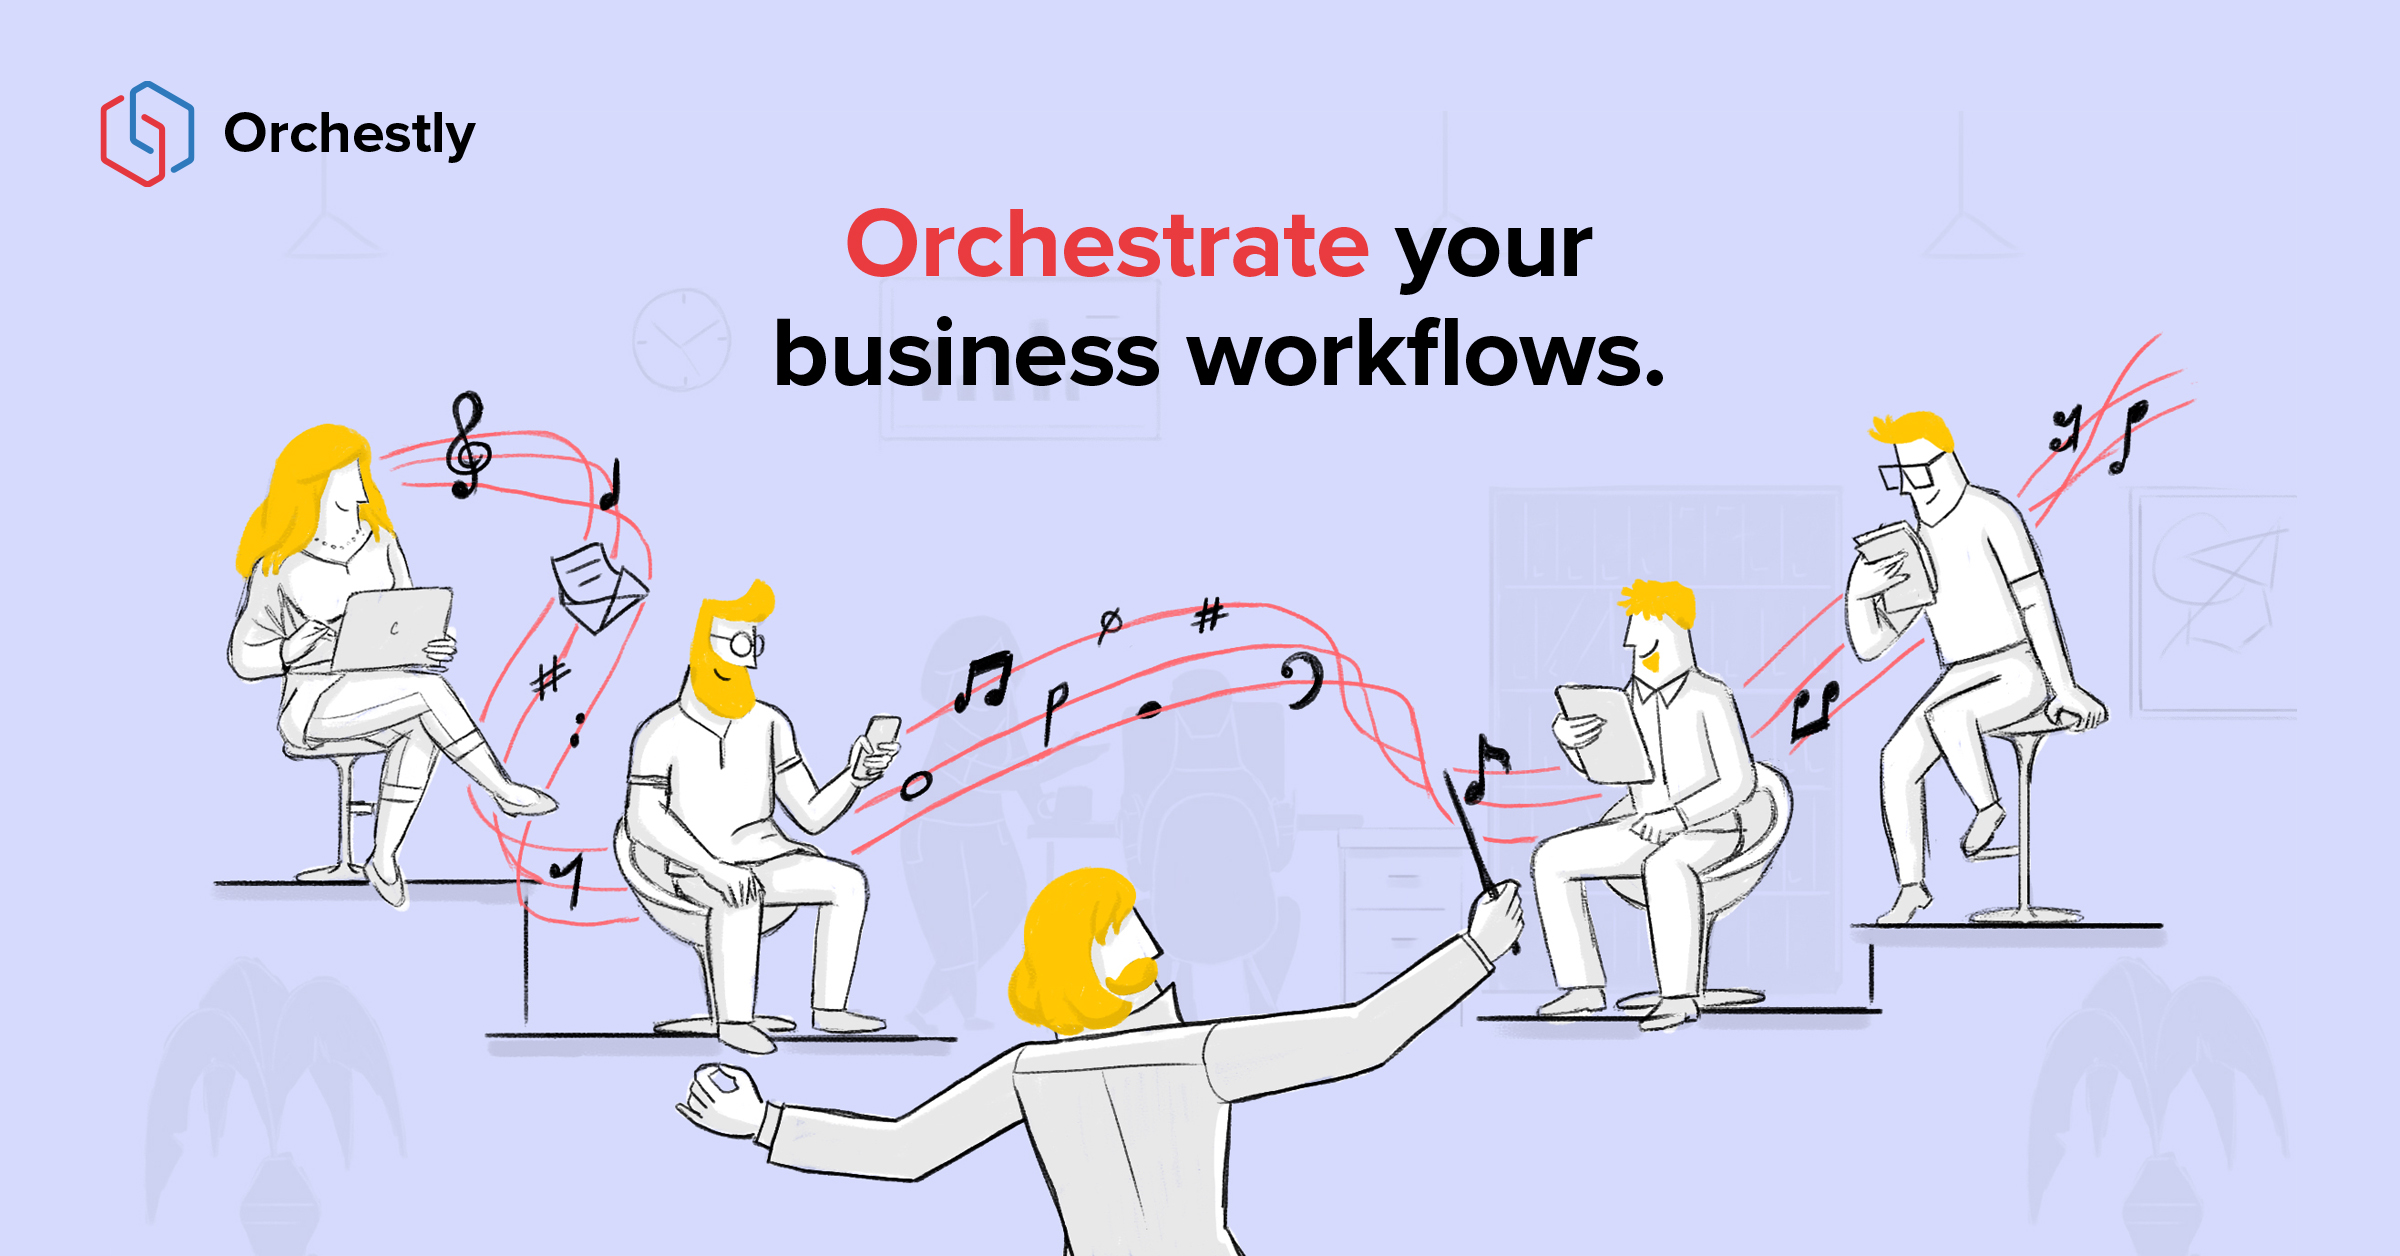 Announcing Orchestly—orchestrate your business workflows